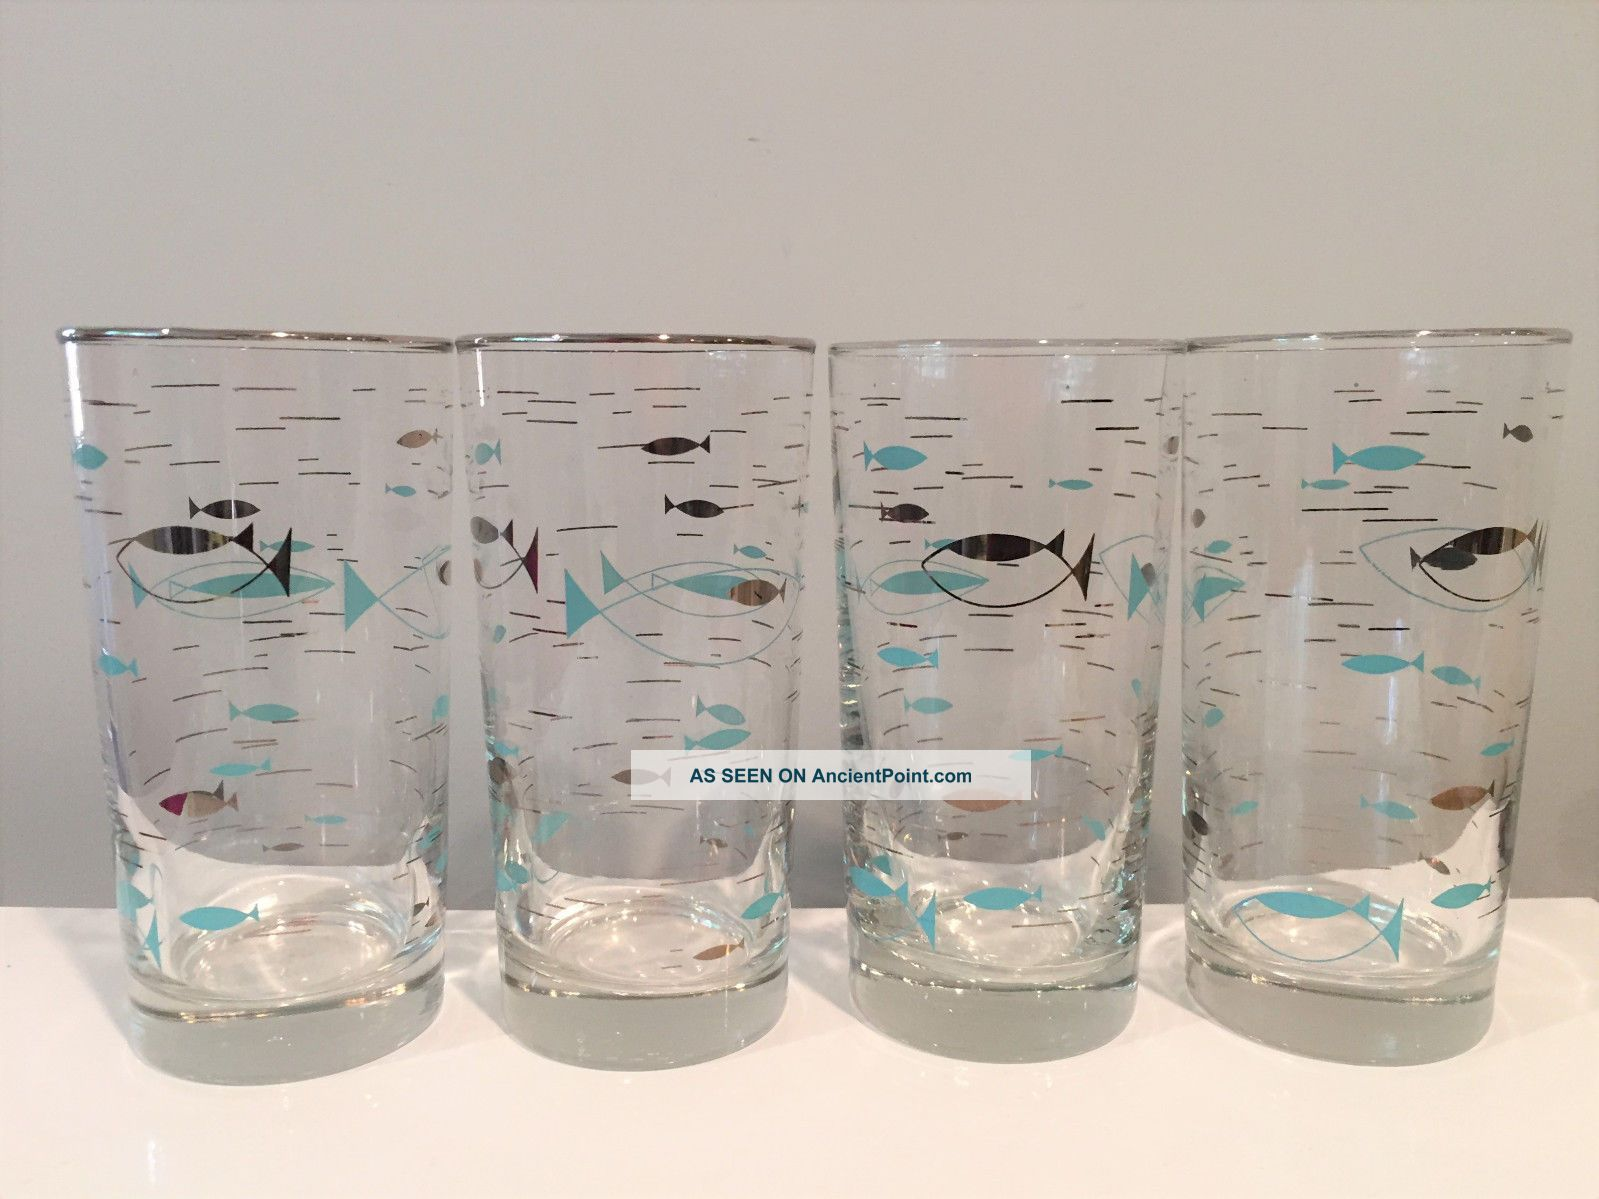 4 Atomic Fish Tall Cocktail Glasses Tumblers Libbey Mediterranean Pattern 1950s Mid-Century Modernism photo